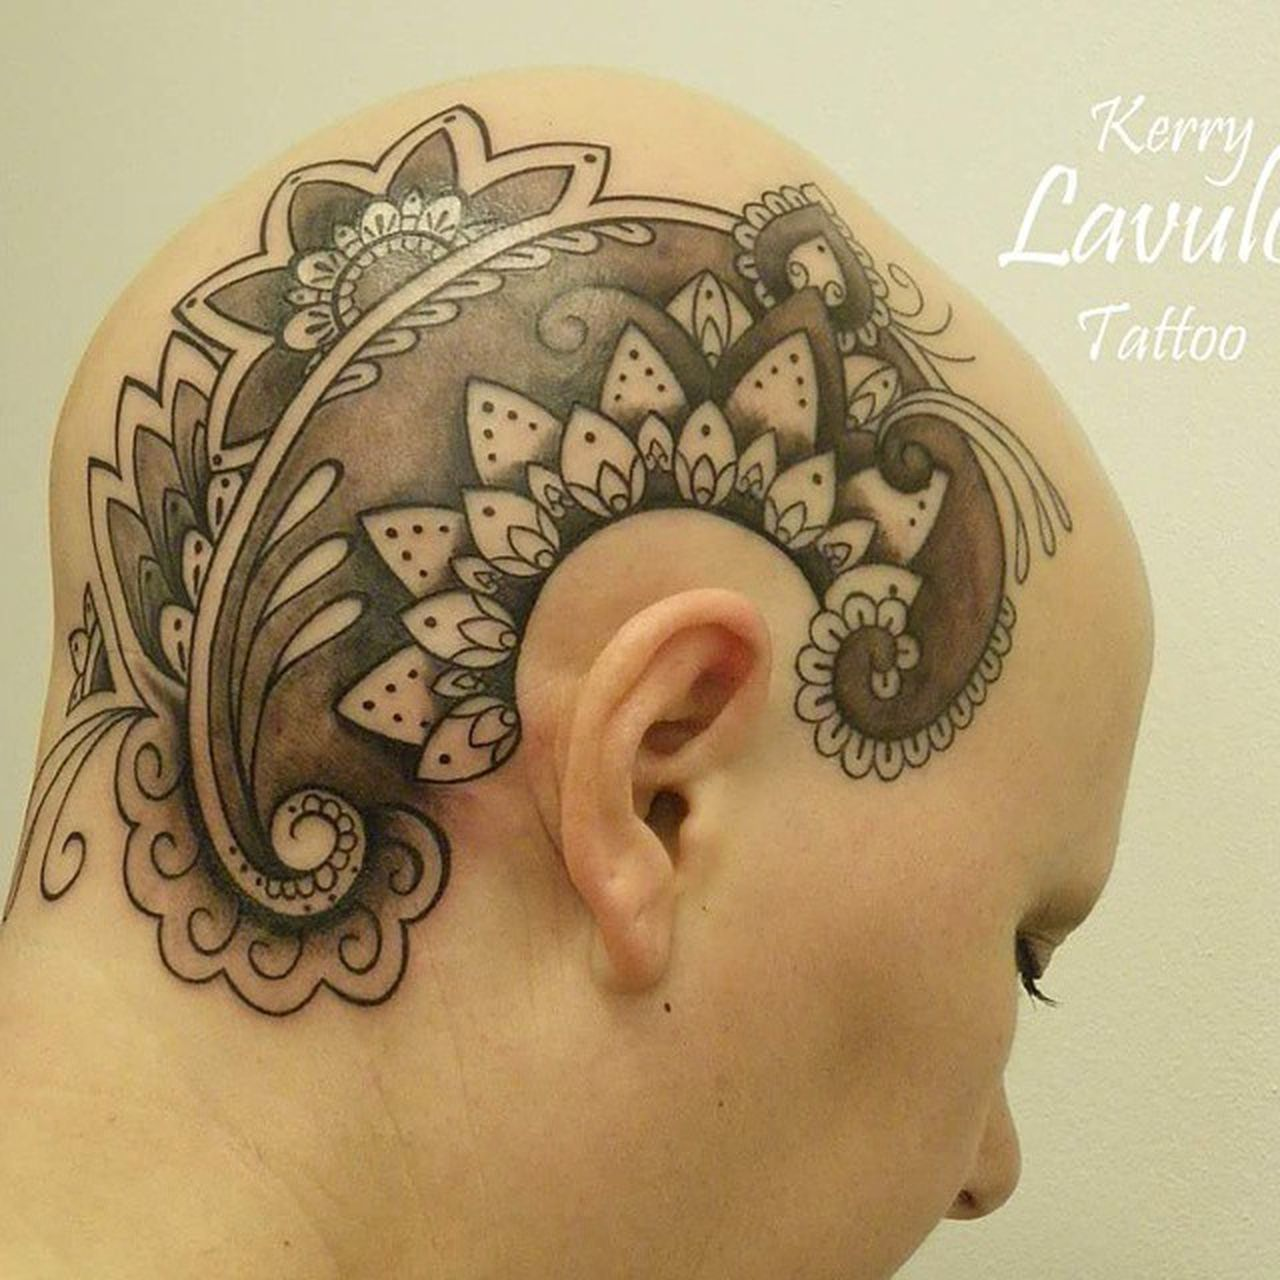 Mendhi /dot work head tattoo Tattoo Whiteflame Kerrylavulotattoist Dotworktattoo Mendhitattoo Mandala Headtattoo Femalewithtattoos Beauty Boom